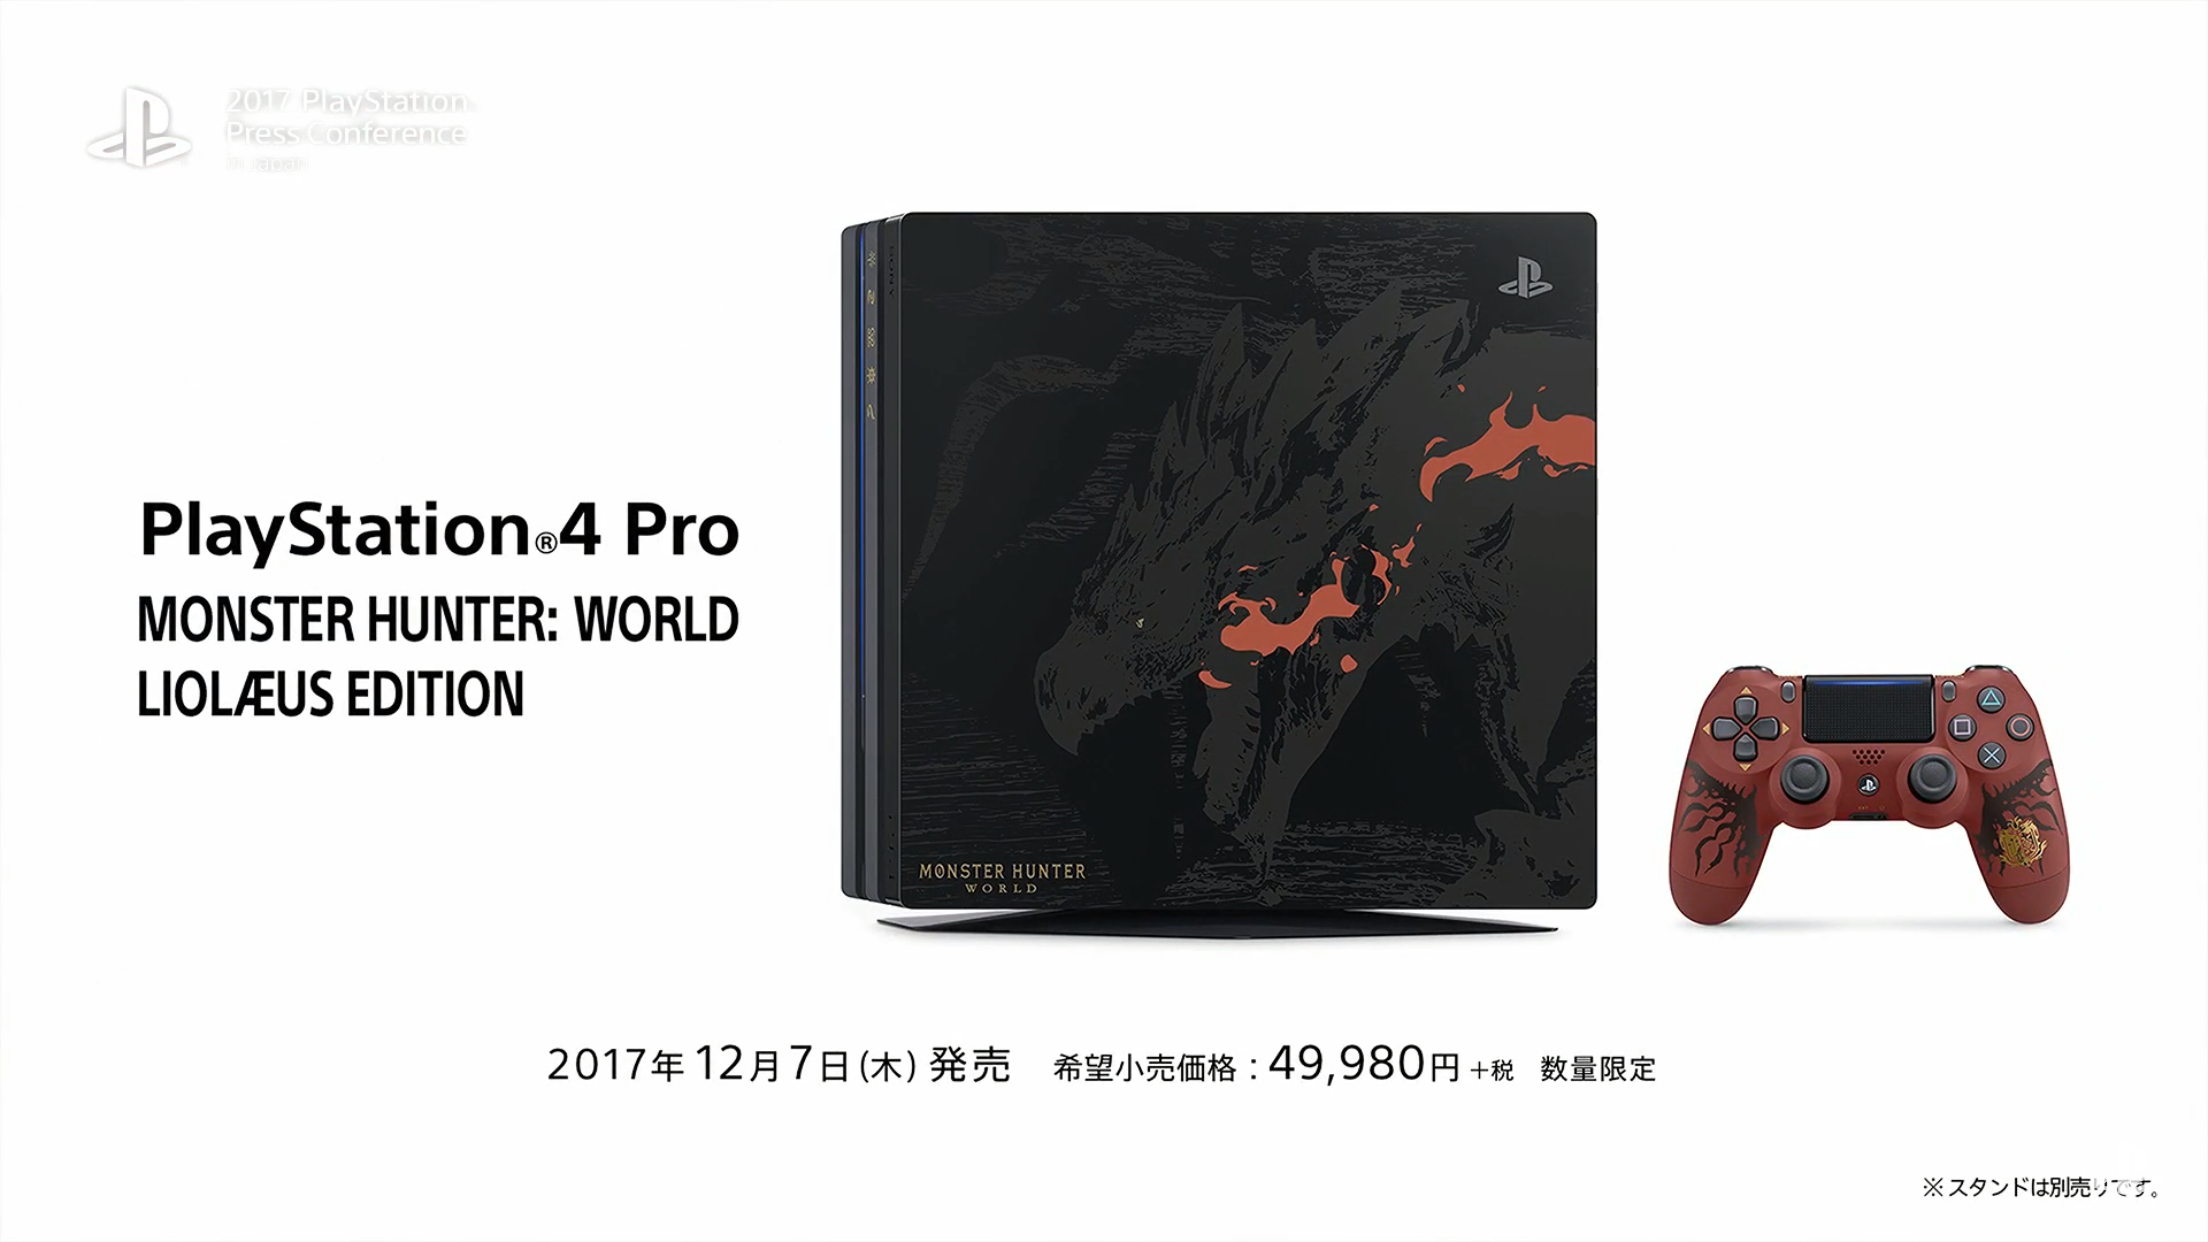 Monster Hunter World will be released worldwide in January 2018